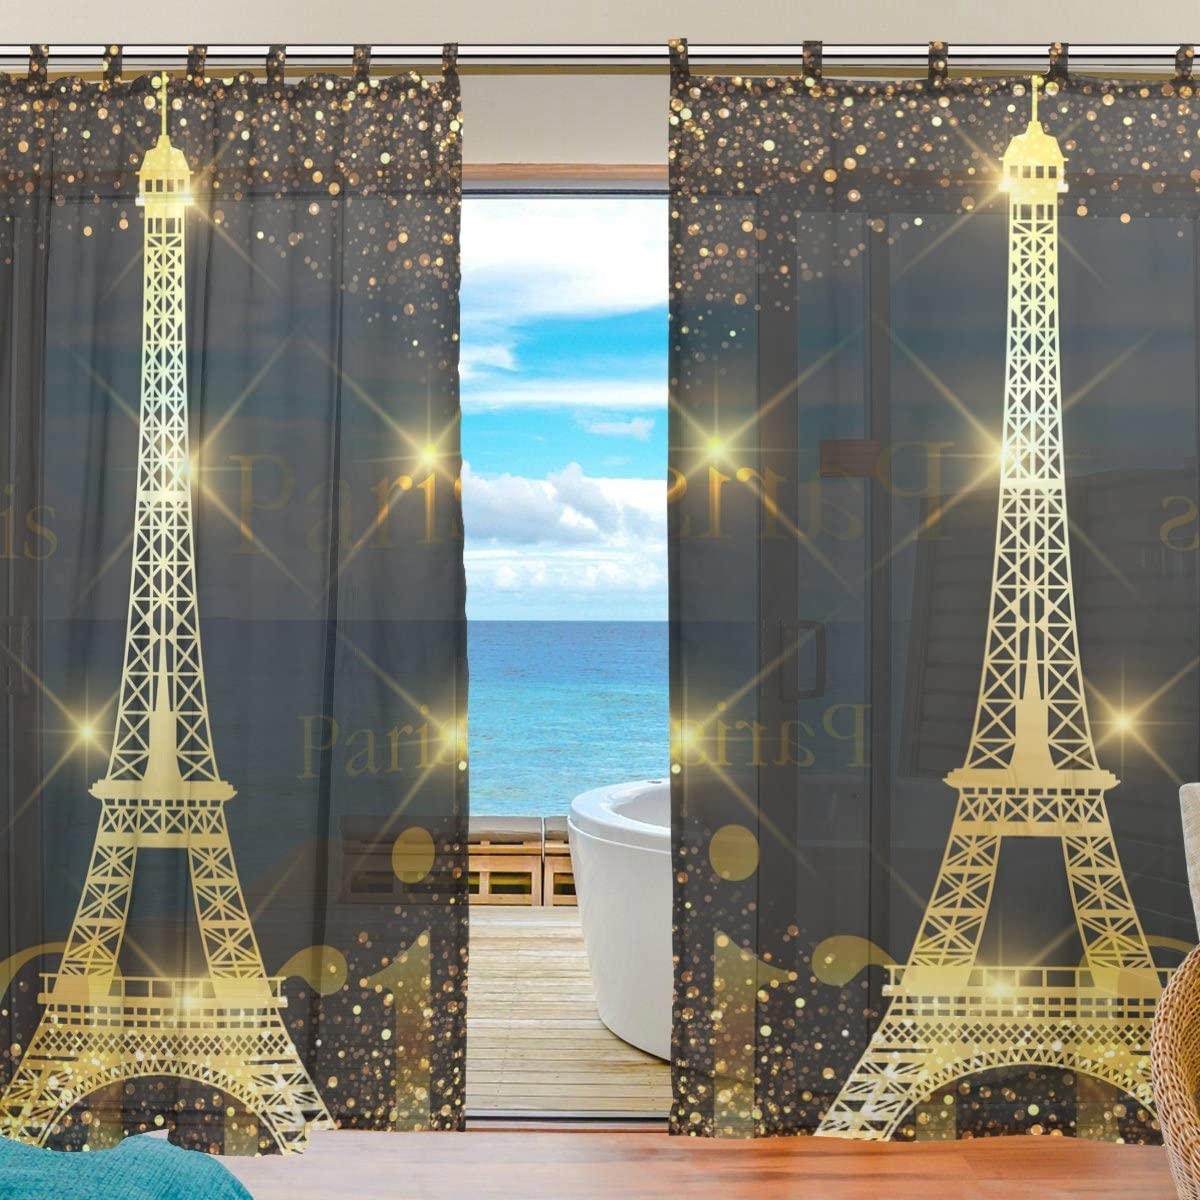 ALAZA Paris Gold Eiffel Tower Window Sheer Voile Curtains for Living Room Bedroom Kids Room Curtains Polyester 55 Wx78 L Per Panel Set of 2 Panels